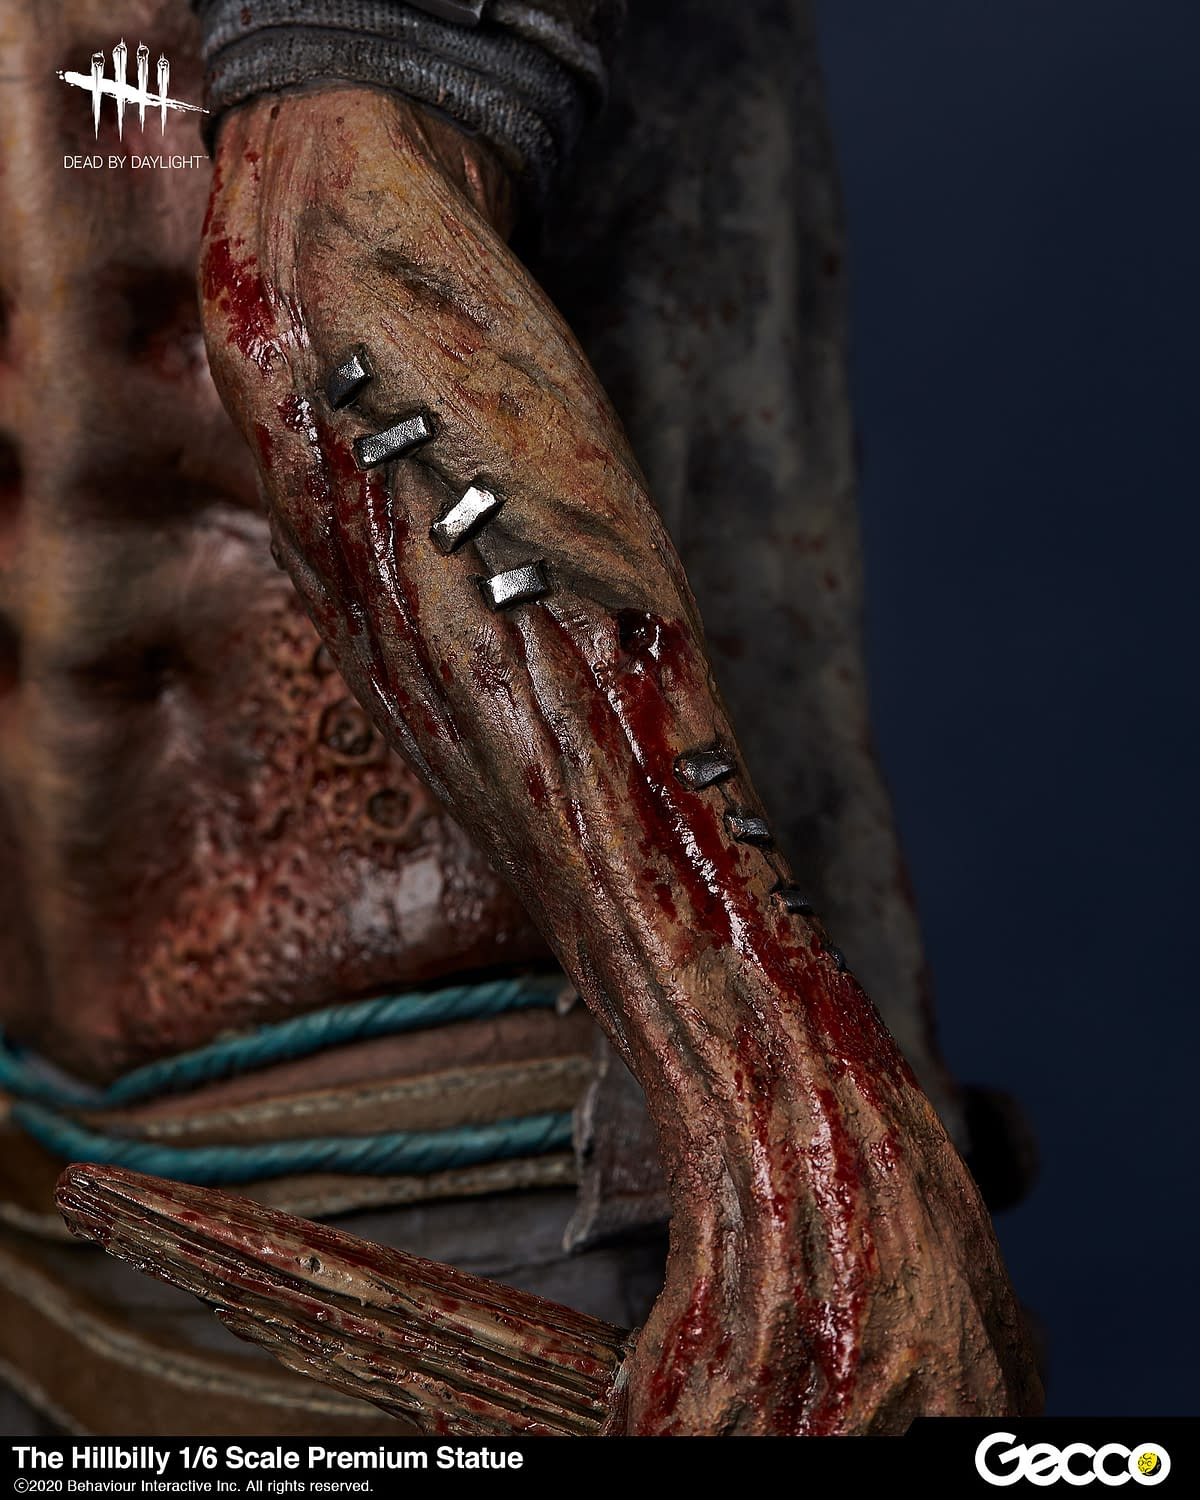 Gecco-Dead-by-Daylight-Hillbilly-Statue-014